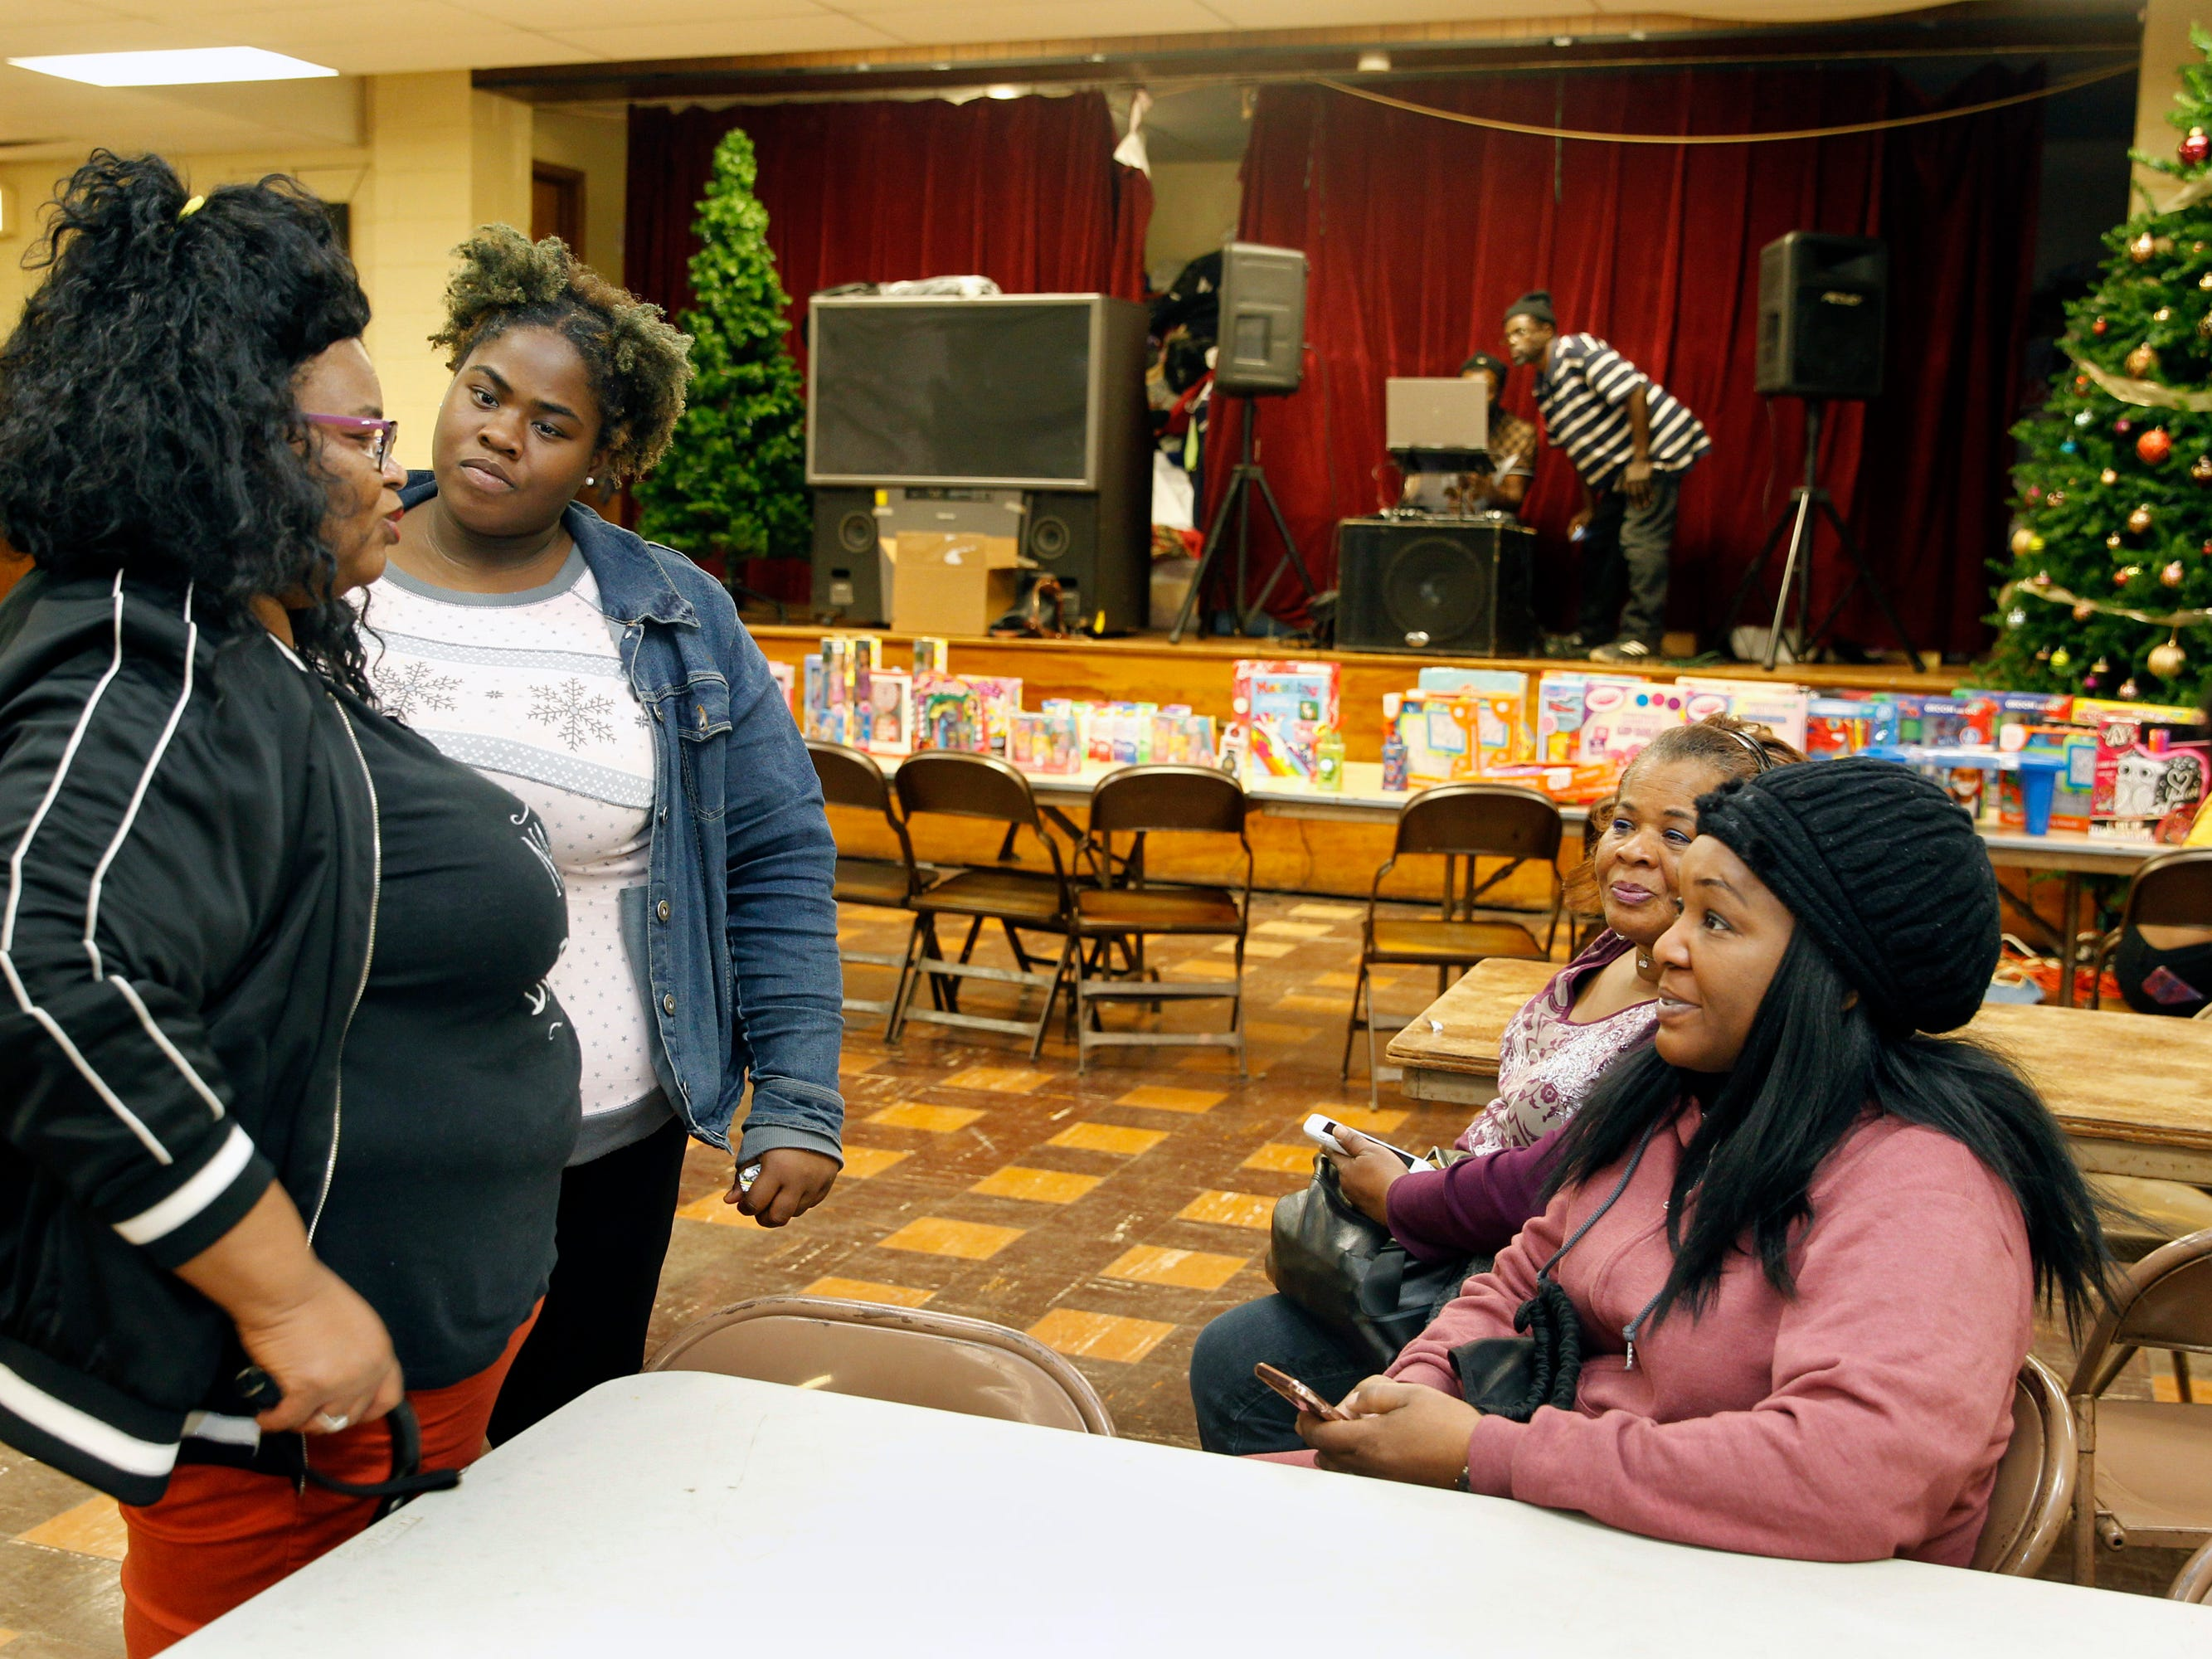 Gloria Nichols, left, stands next to her daughter, Tia James, as they talk to supporters of her nonprofit, Robert's Way, during a holiday event that it held.